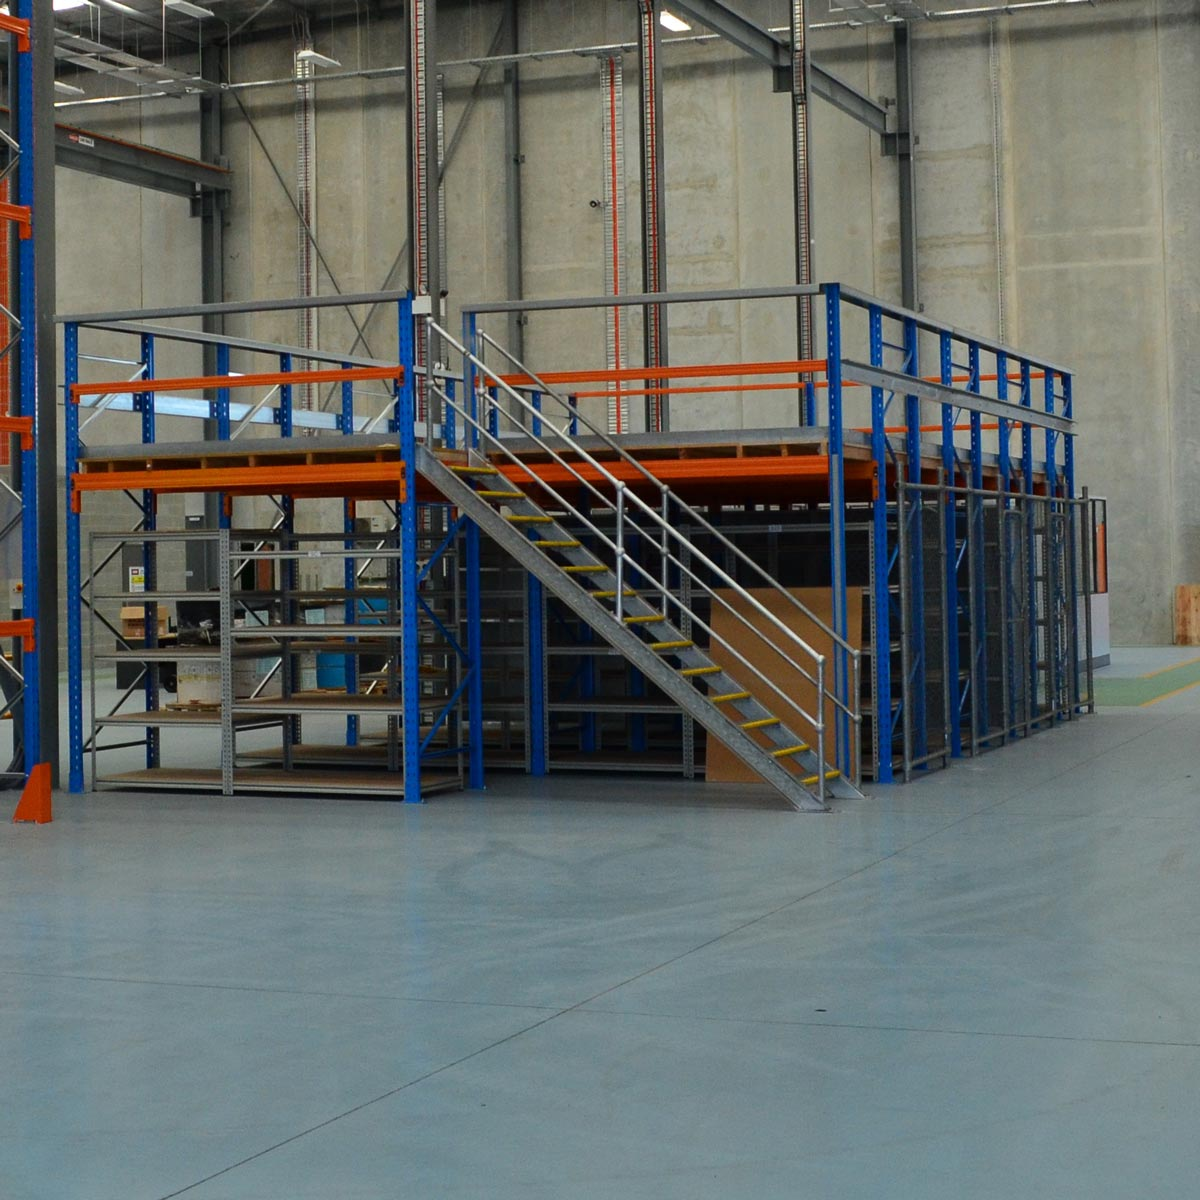 A front look of Racking Type Mezzanine Floors in a warehouse.